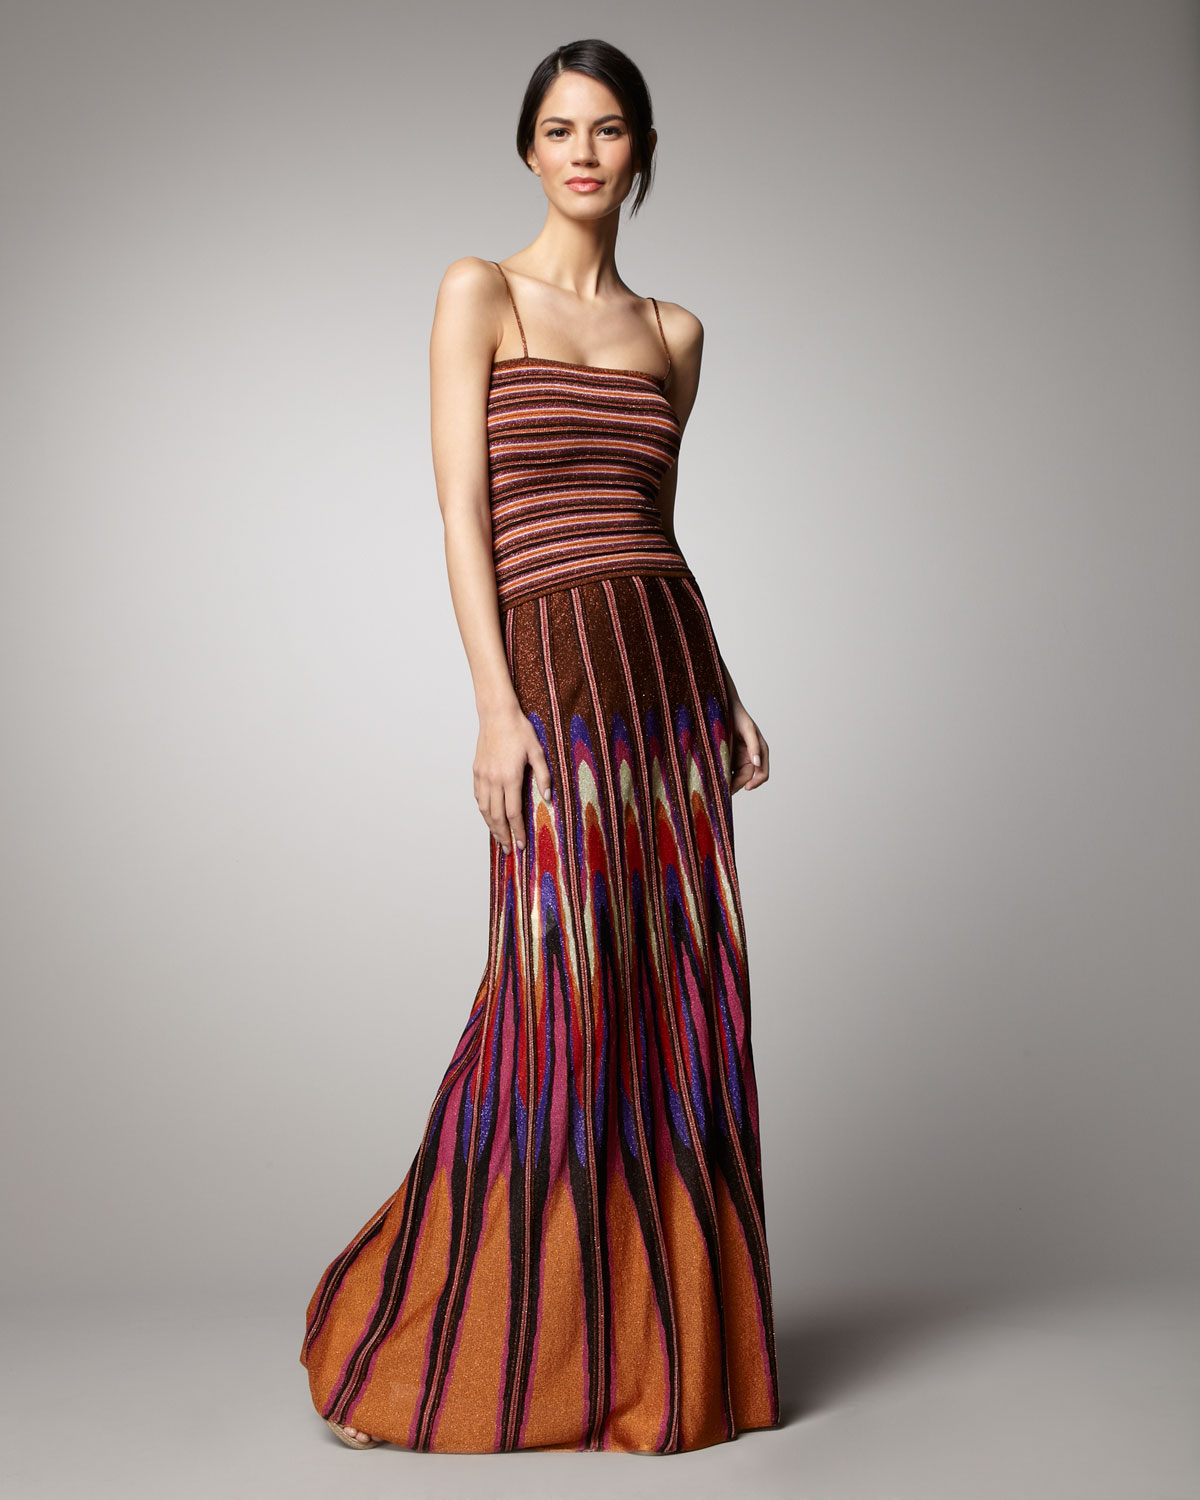 Lyst - M Missoni Shimmery Twist-back Gown in Brown